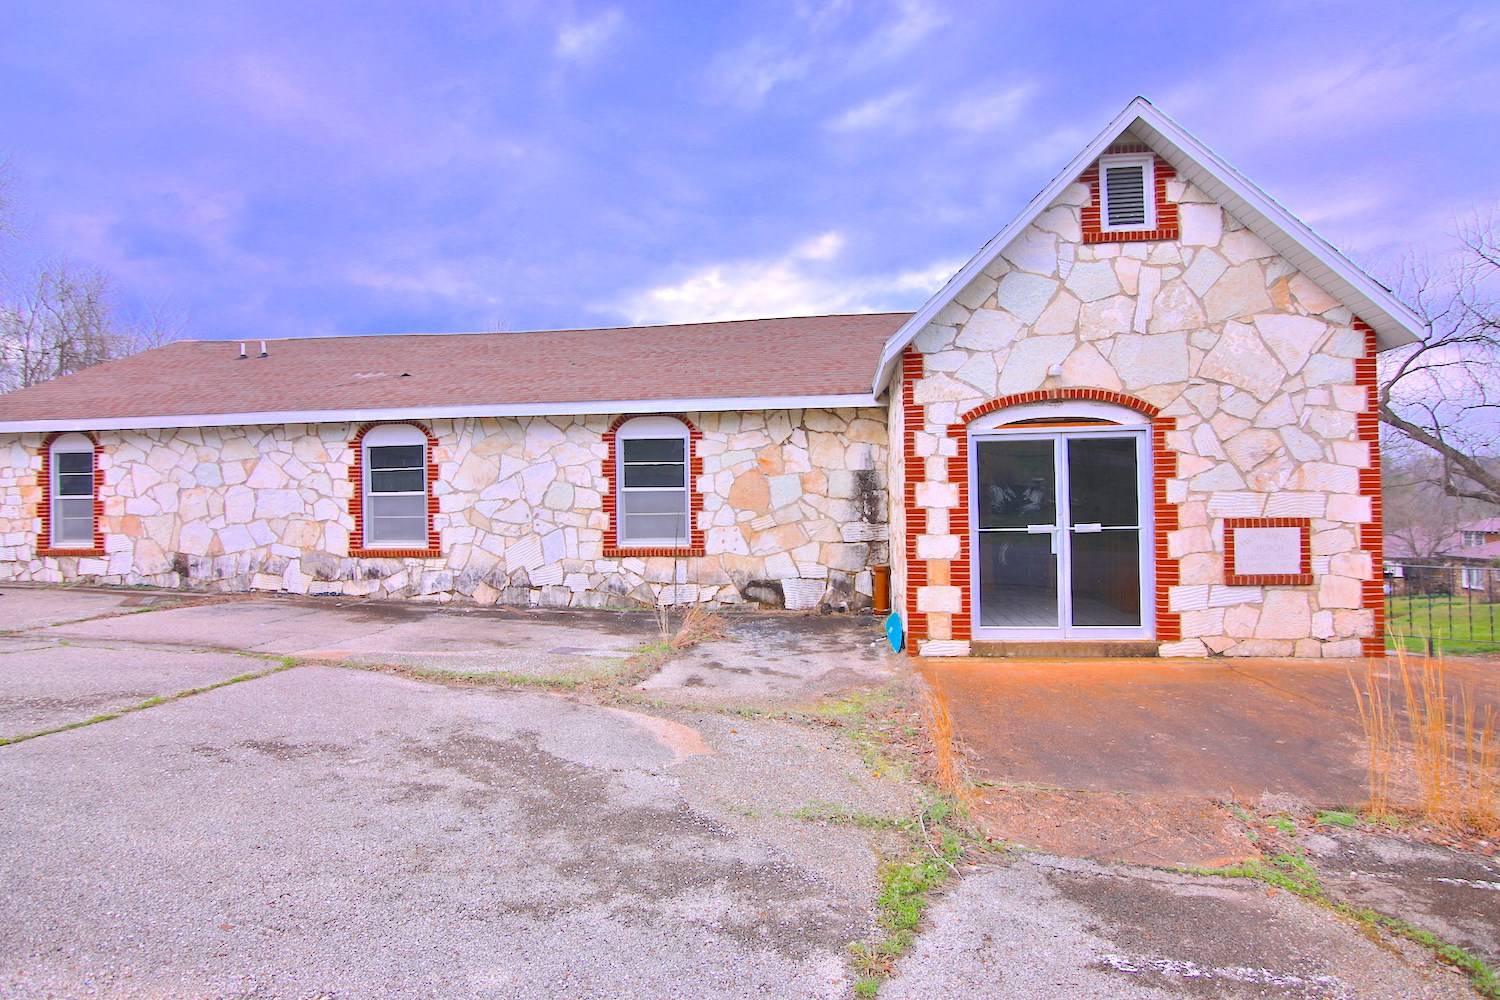 Commercial Property for Sale in Mammoth Spring, AR